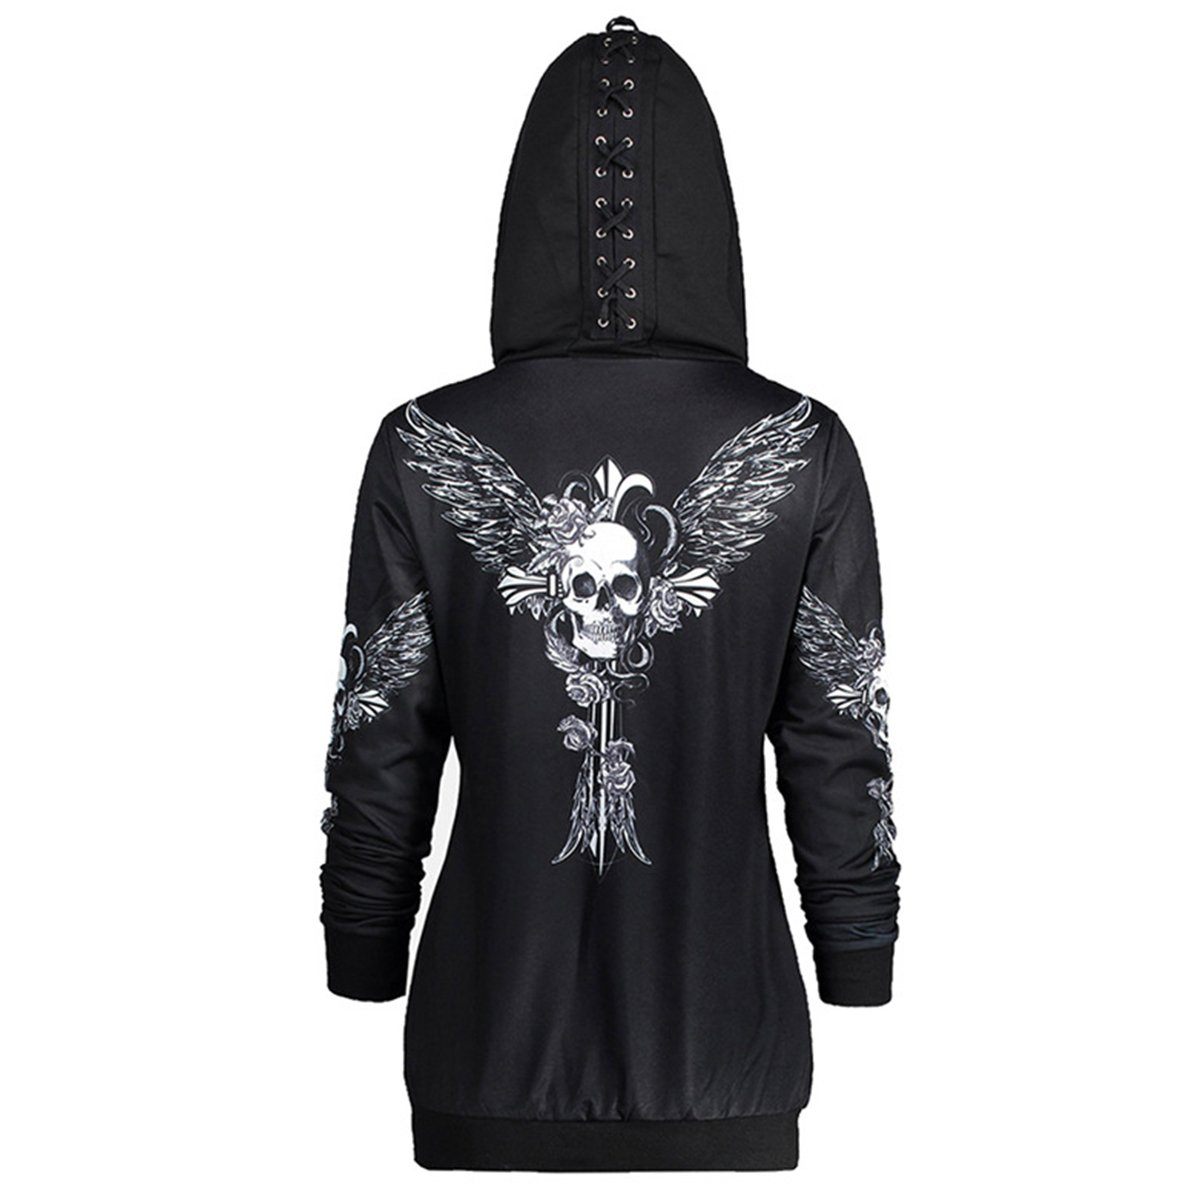 WENFUMEI Women Causal Zipper Hoodie Skull Wings Print Hooded Jacket Coat Loose Sweatshirt Size L (Black)